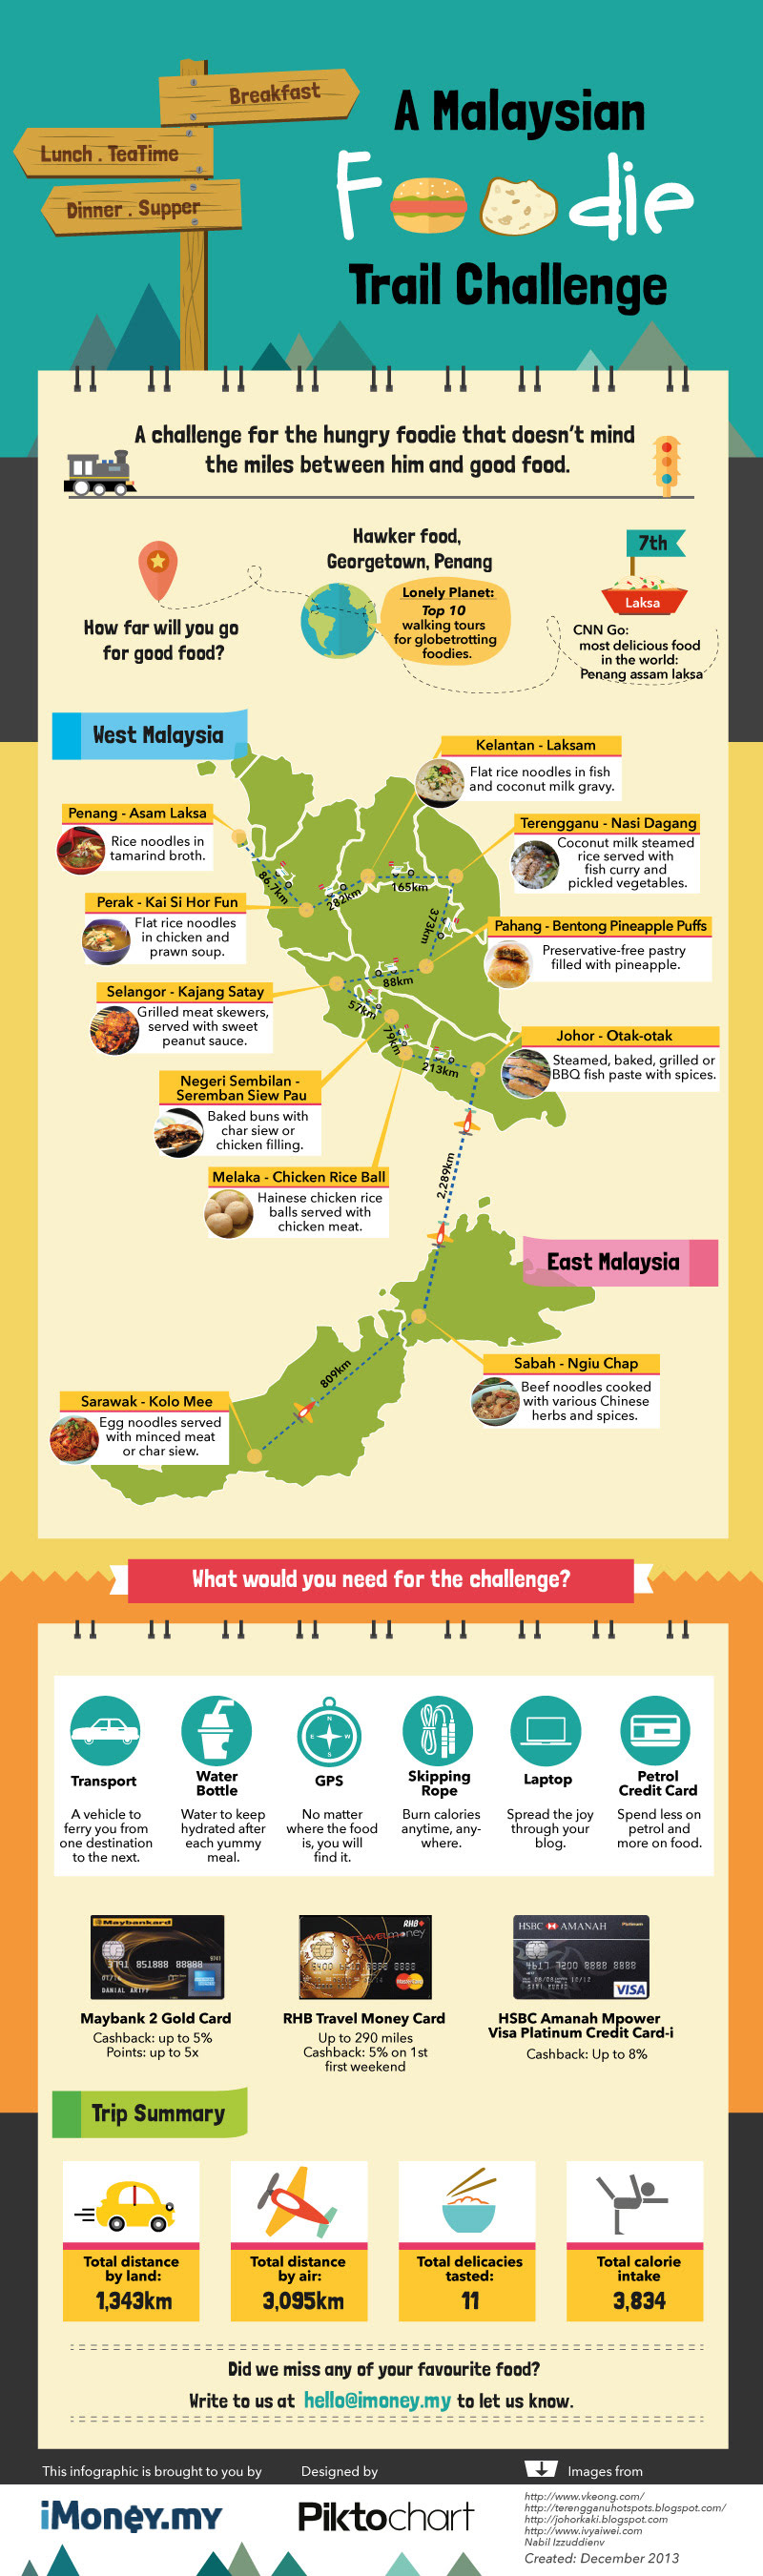 malaysian-food-trail